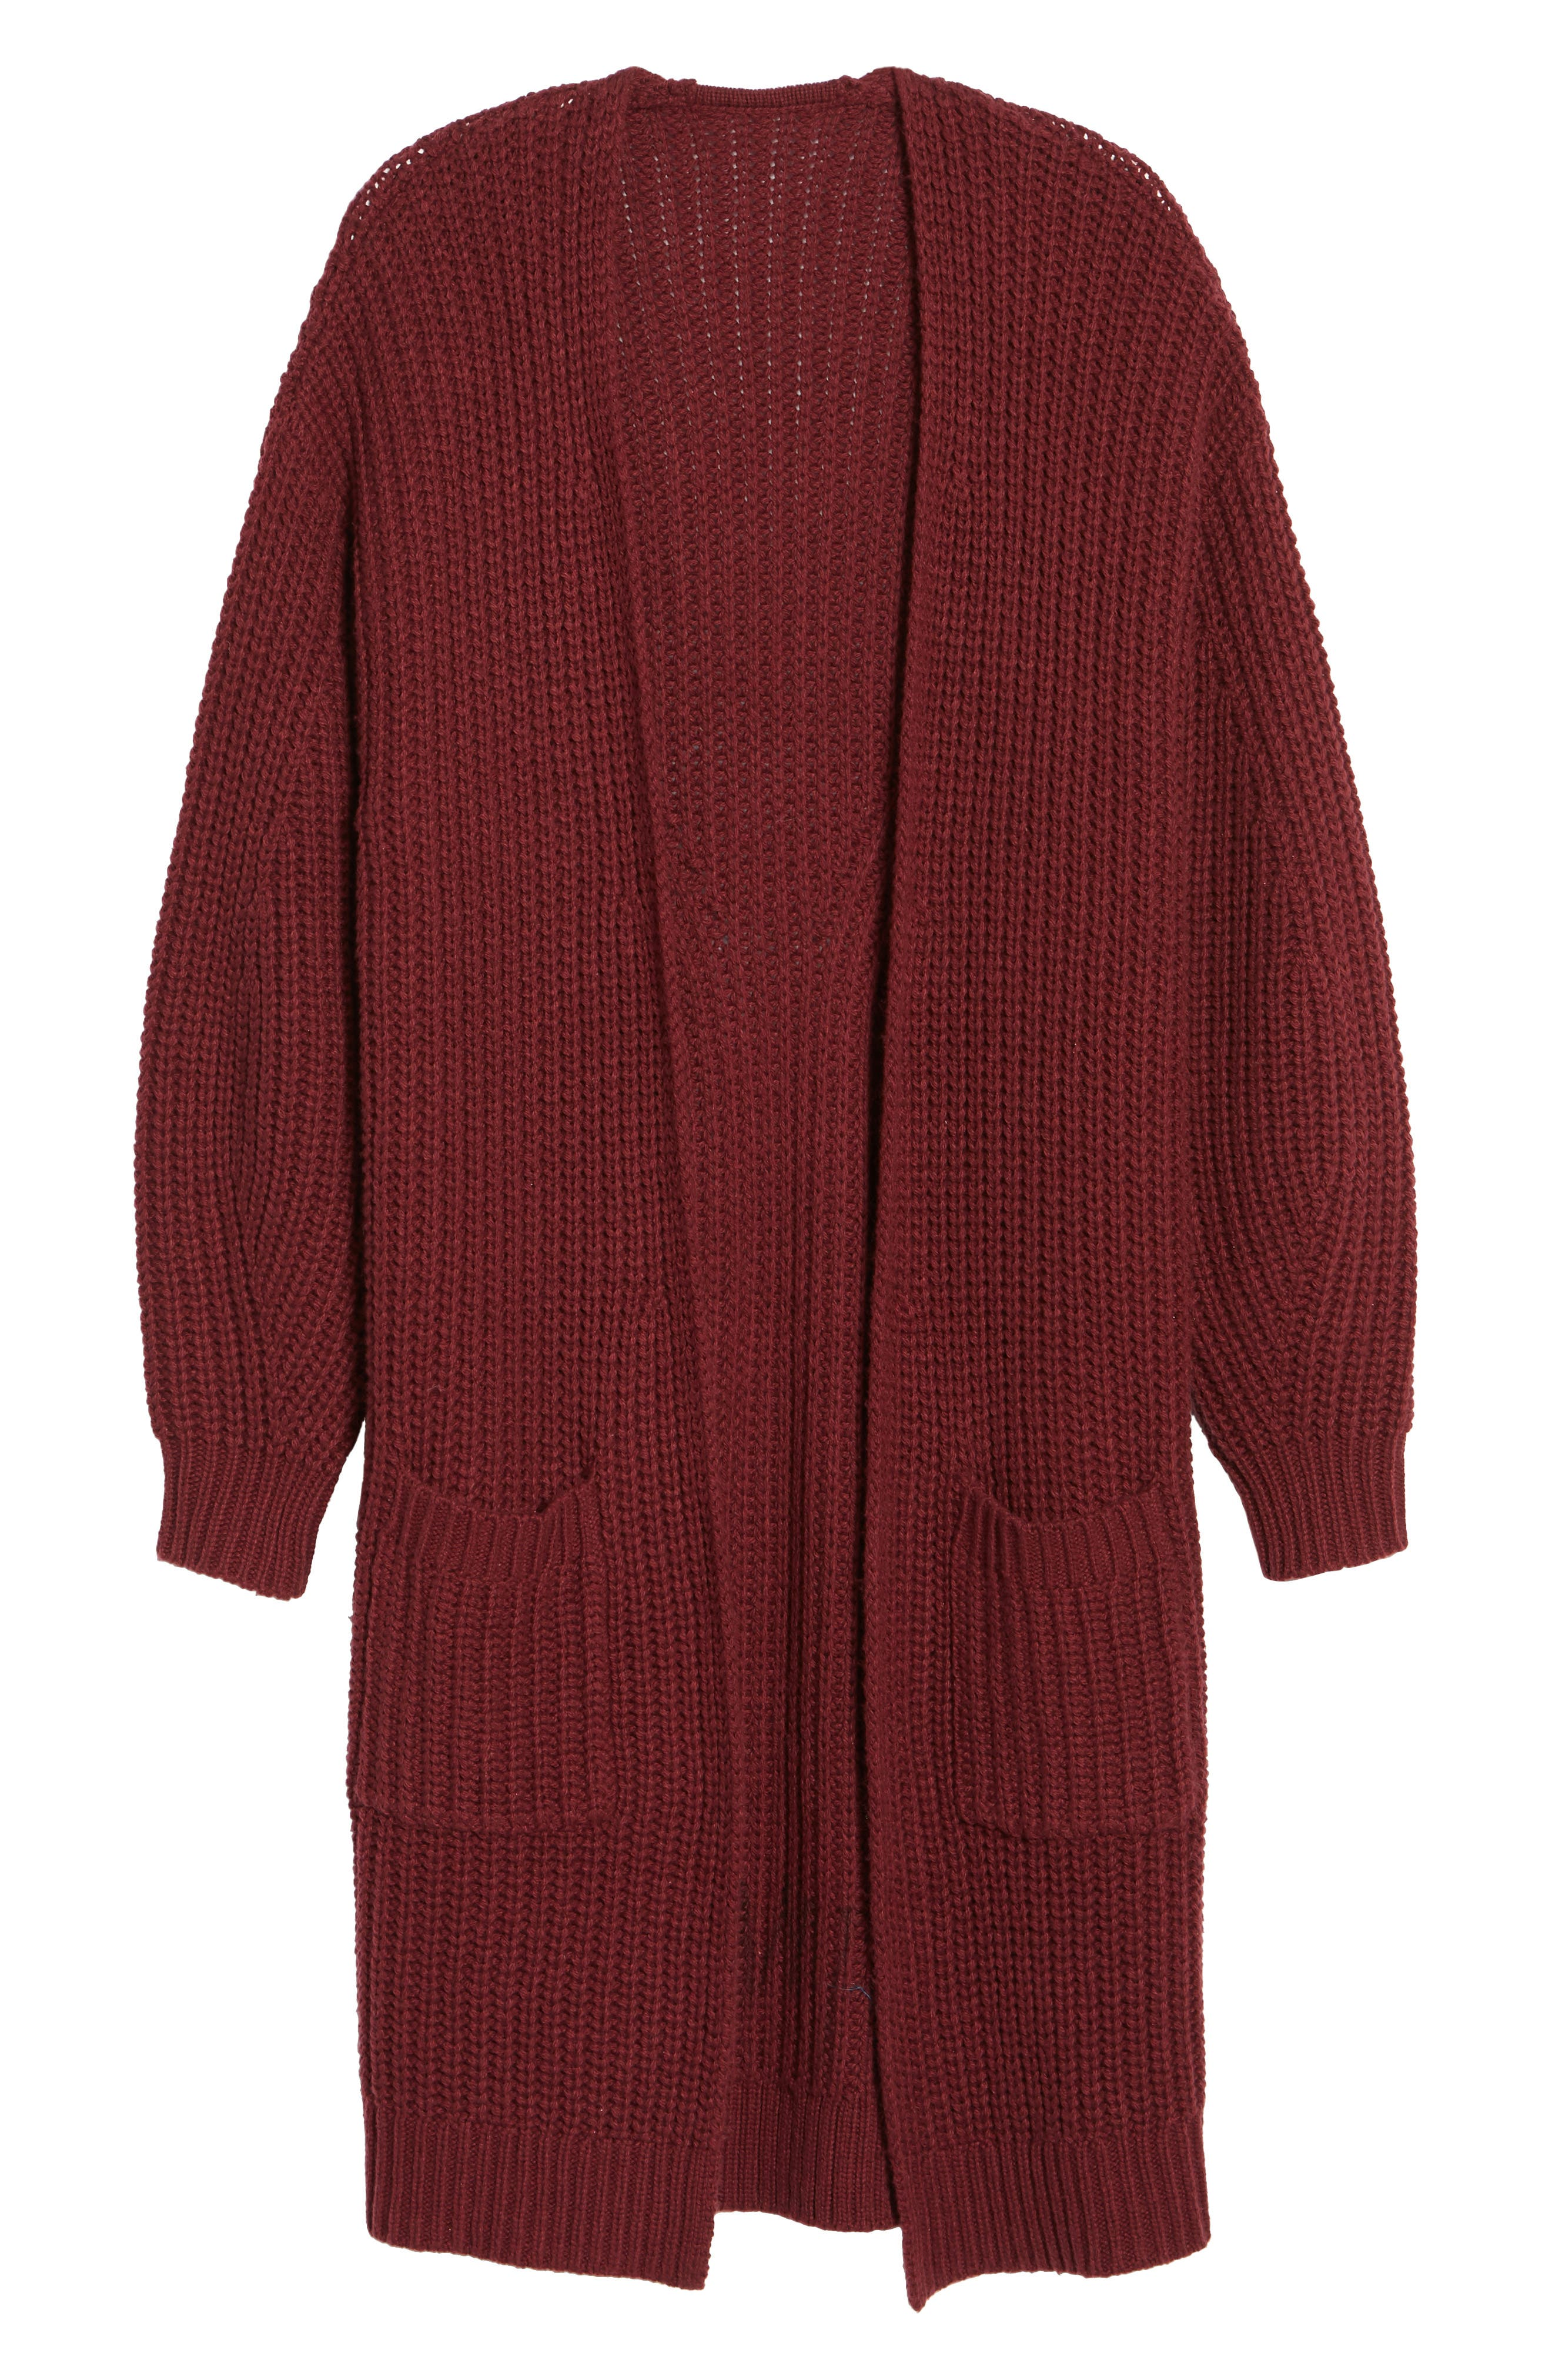 Shaped Sleeve Longline Cardigan,                             Alternate thumbnail 12, color,